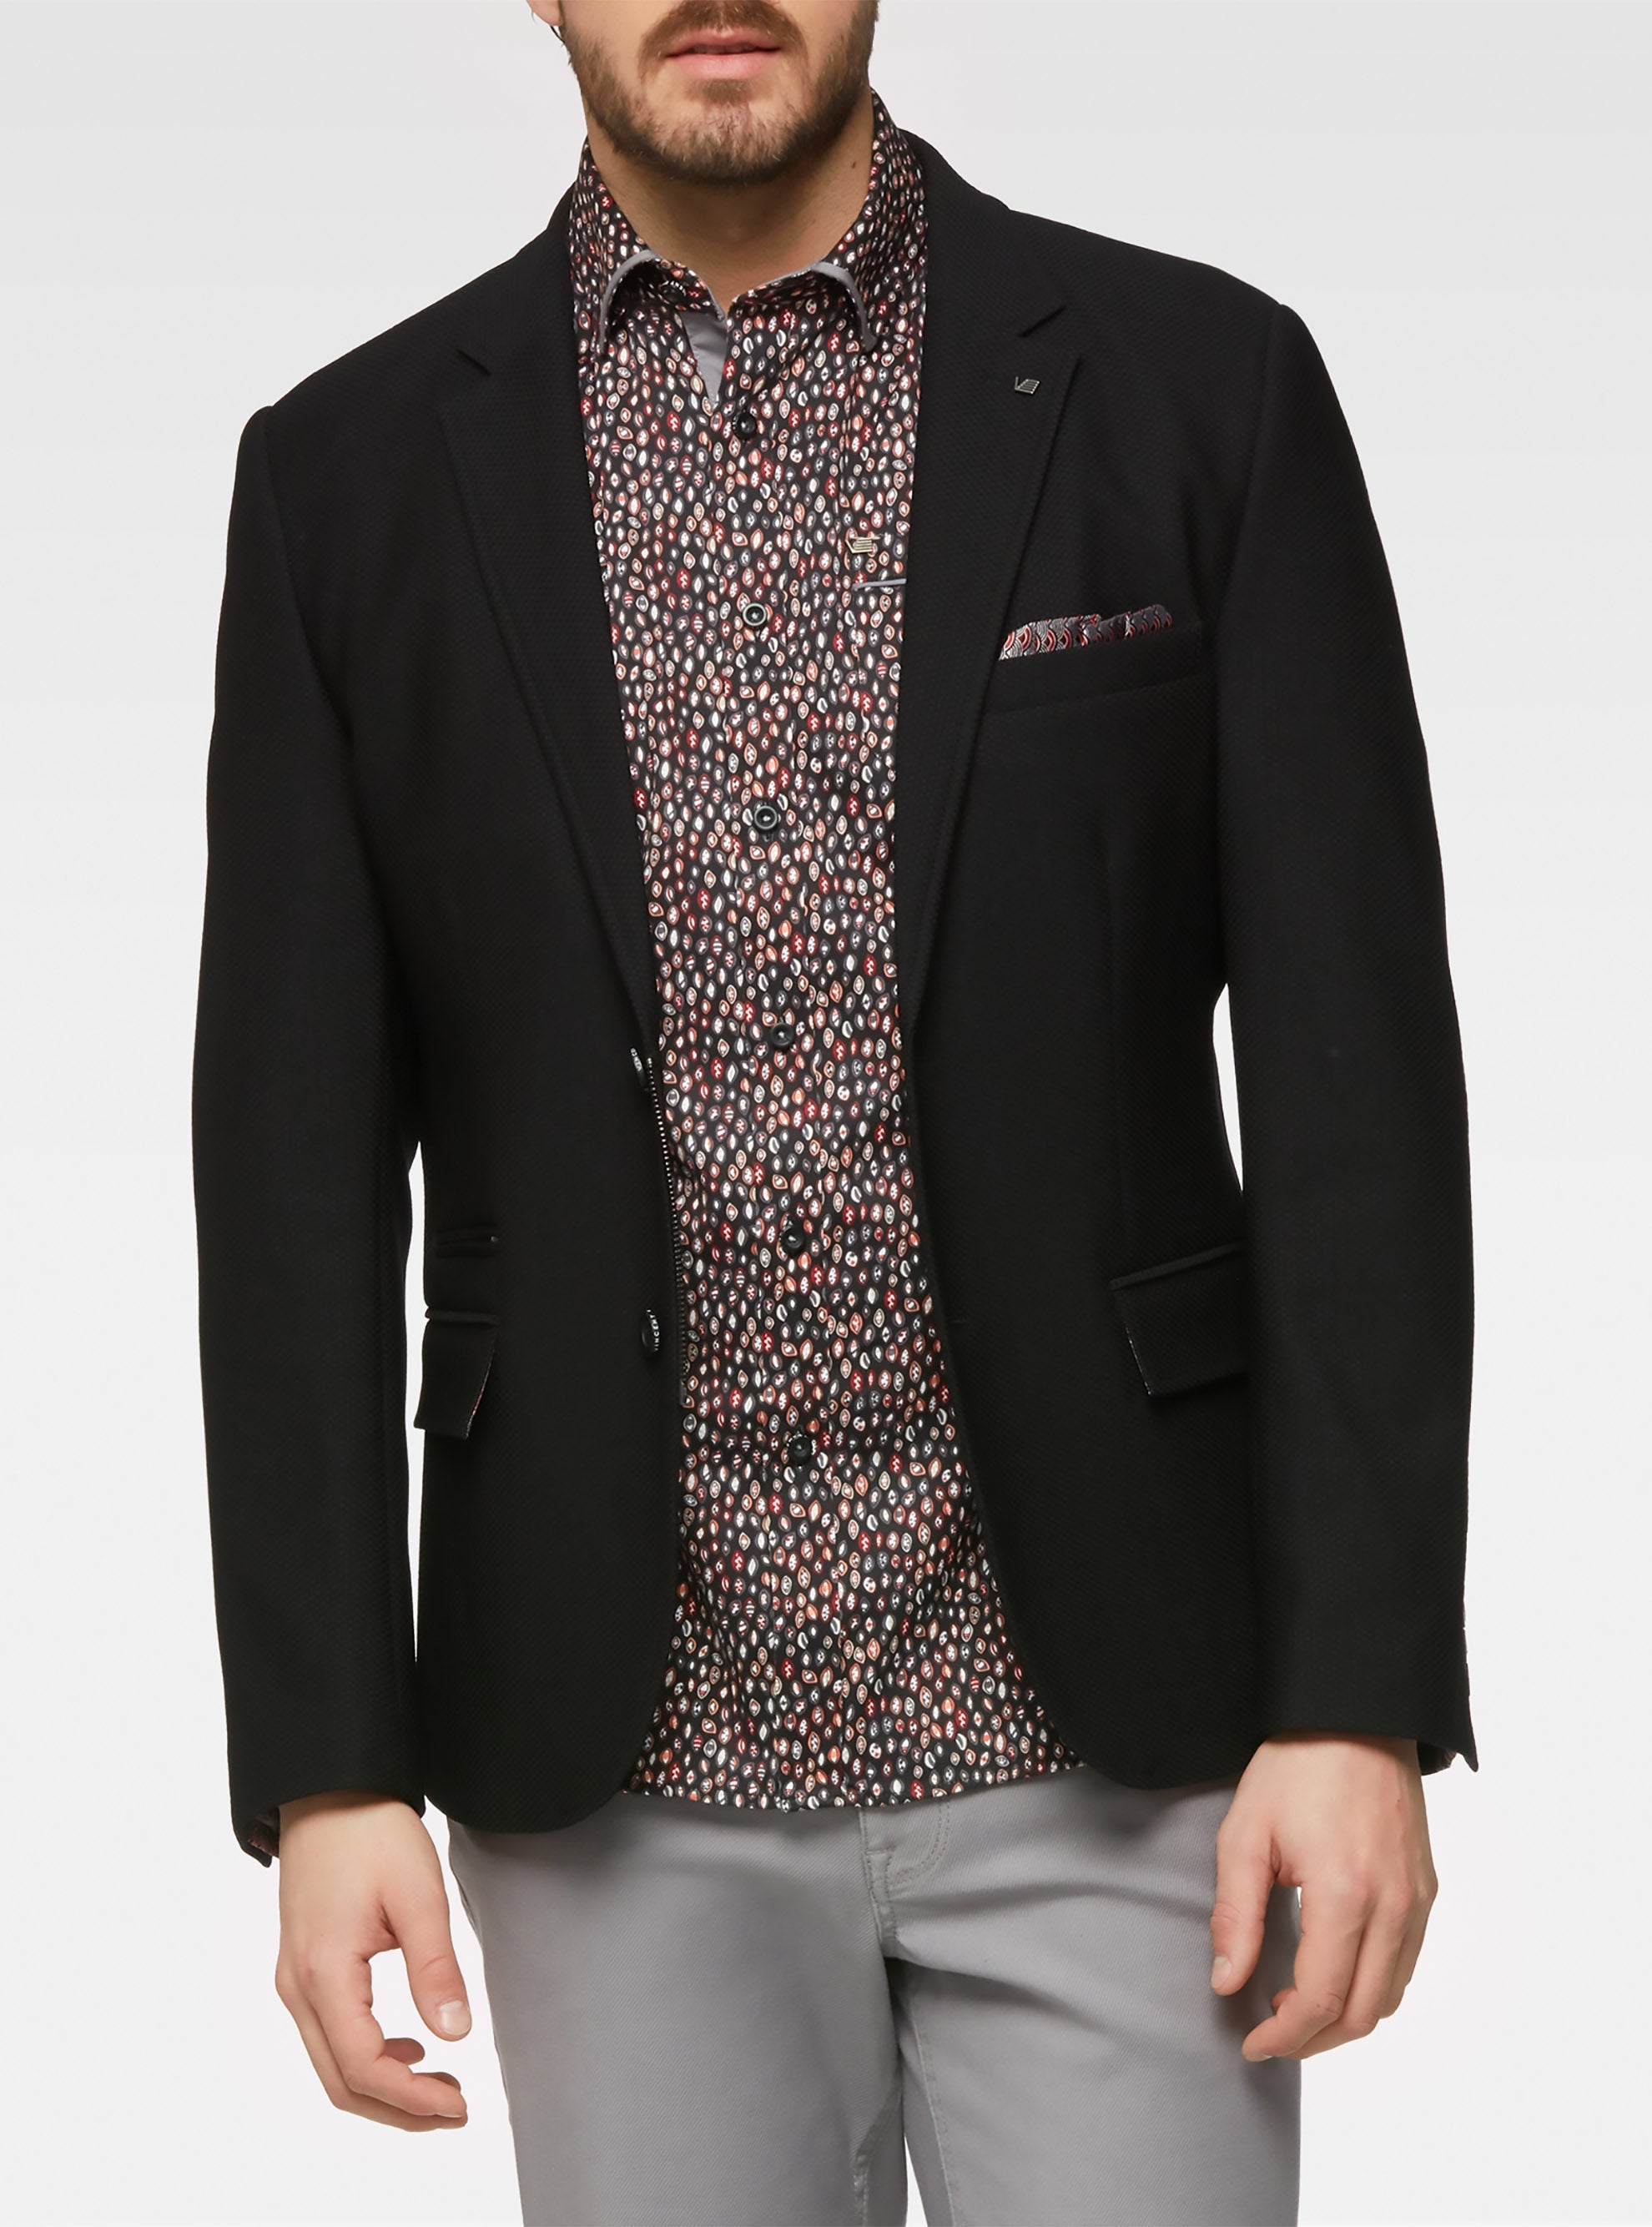 Stretch honeycomb knit tailored sport jacket